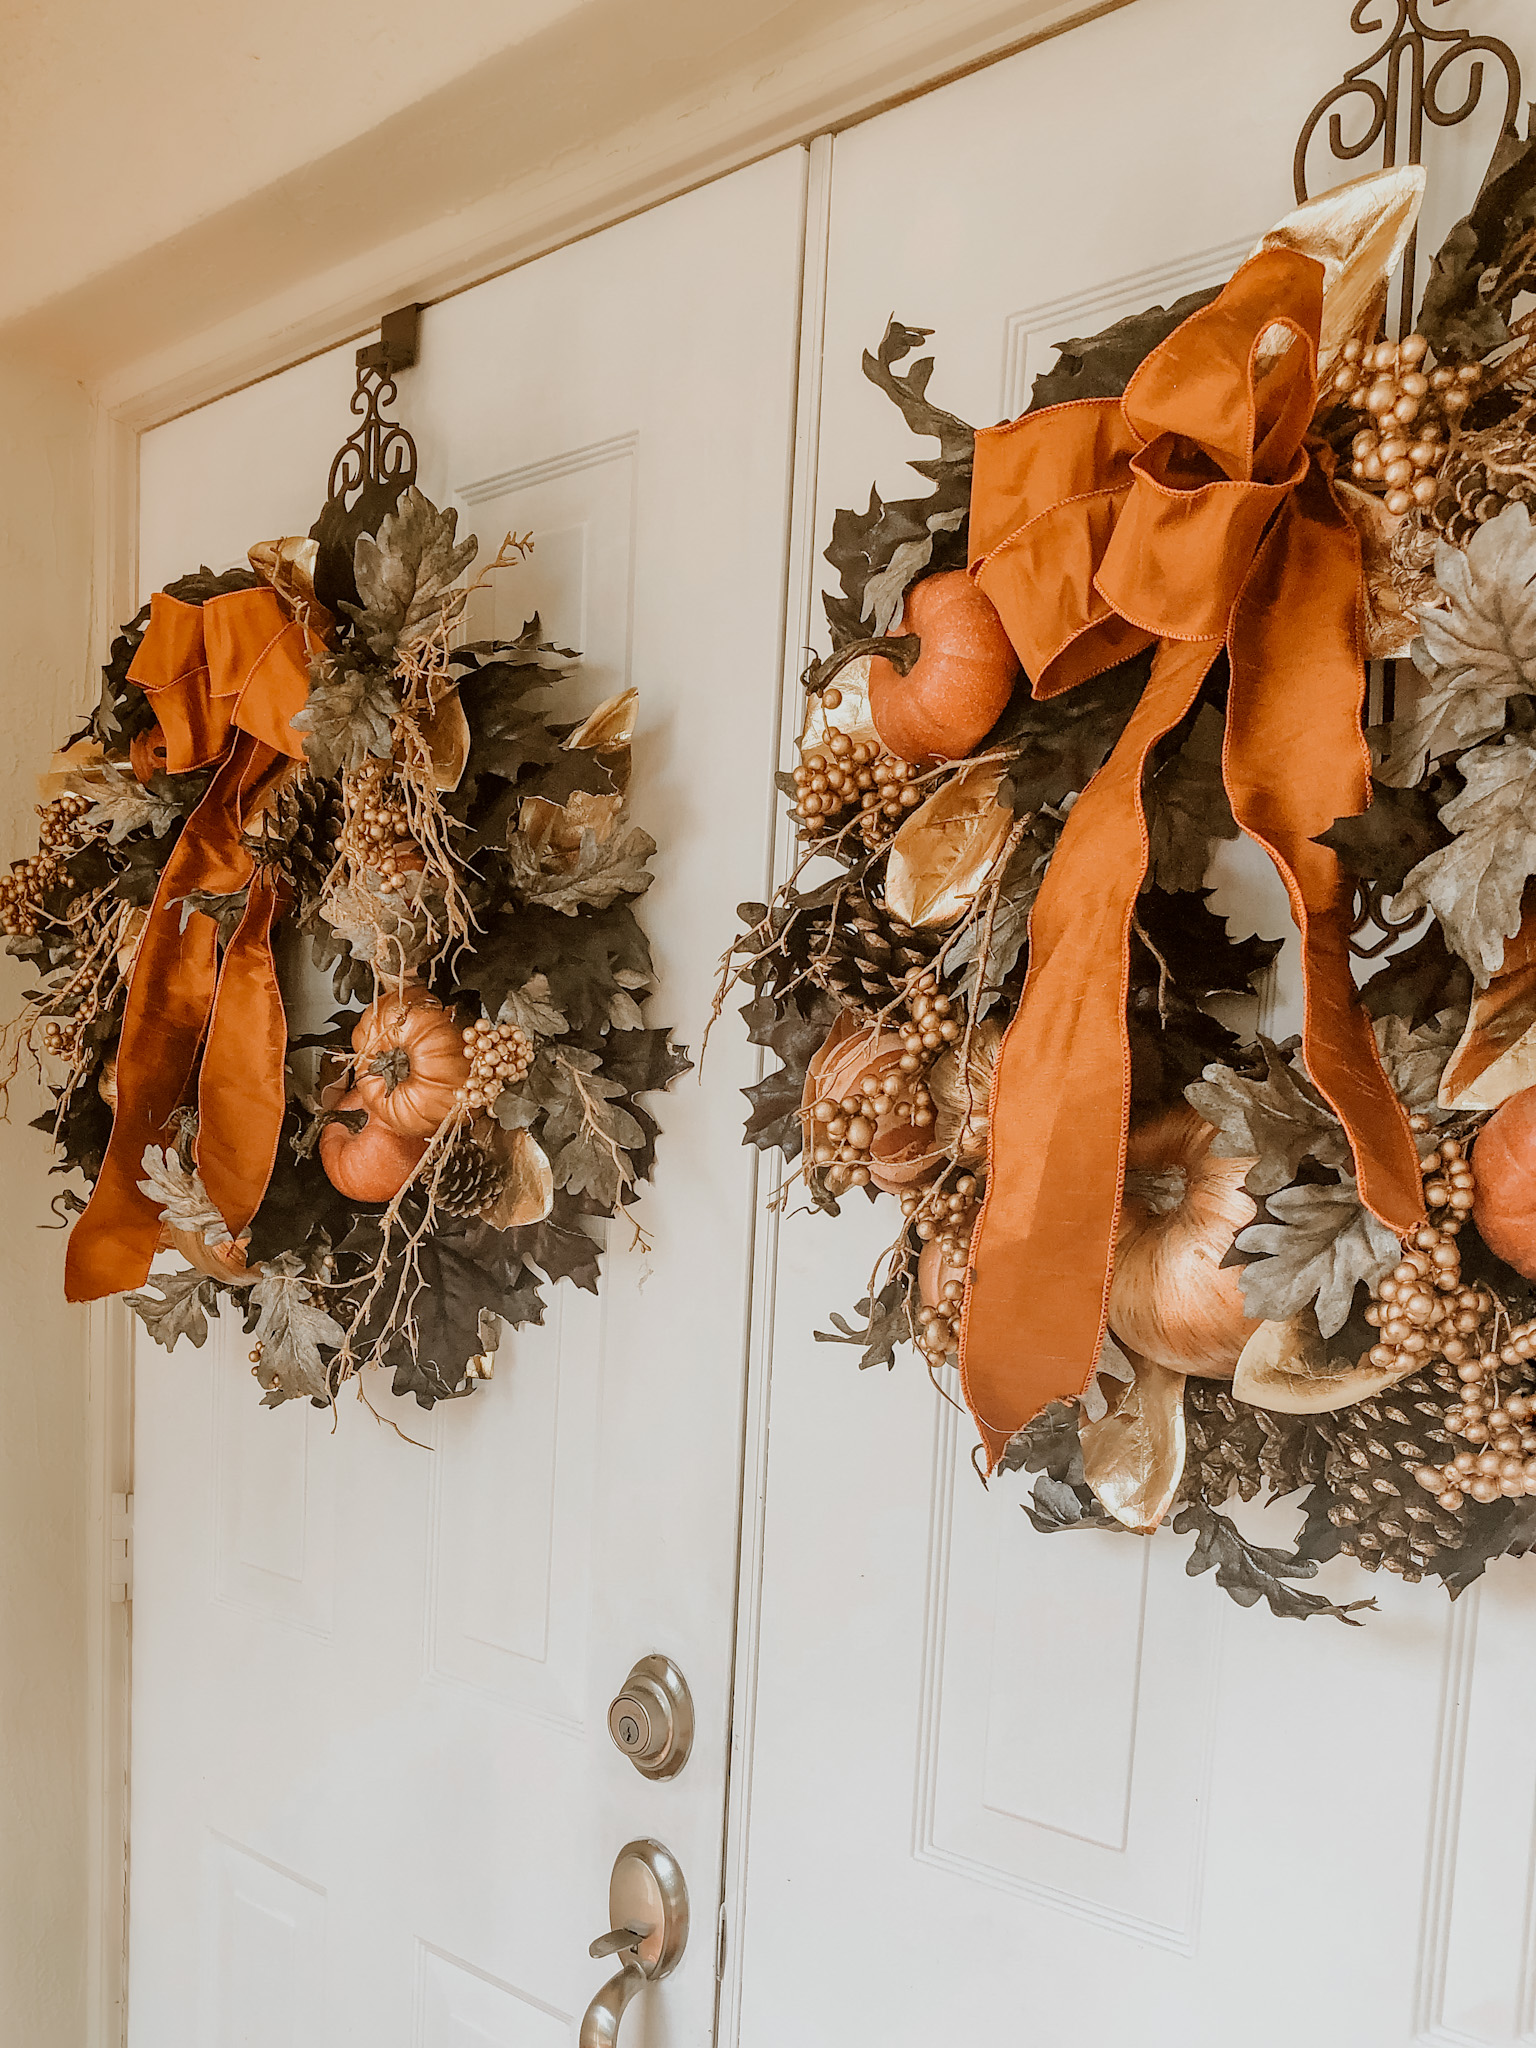 My Front Door is all Decked out for Fall